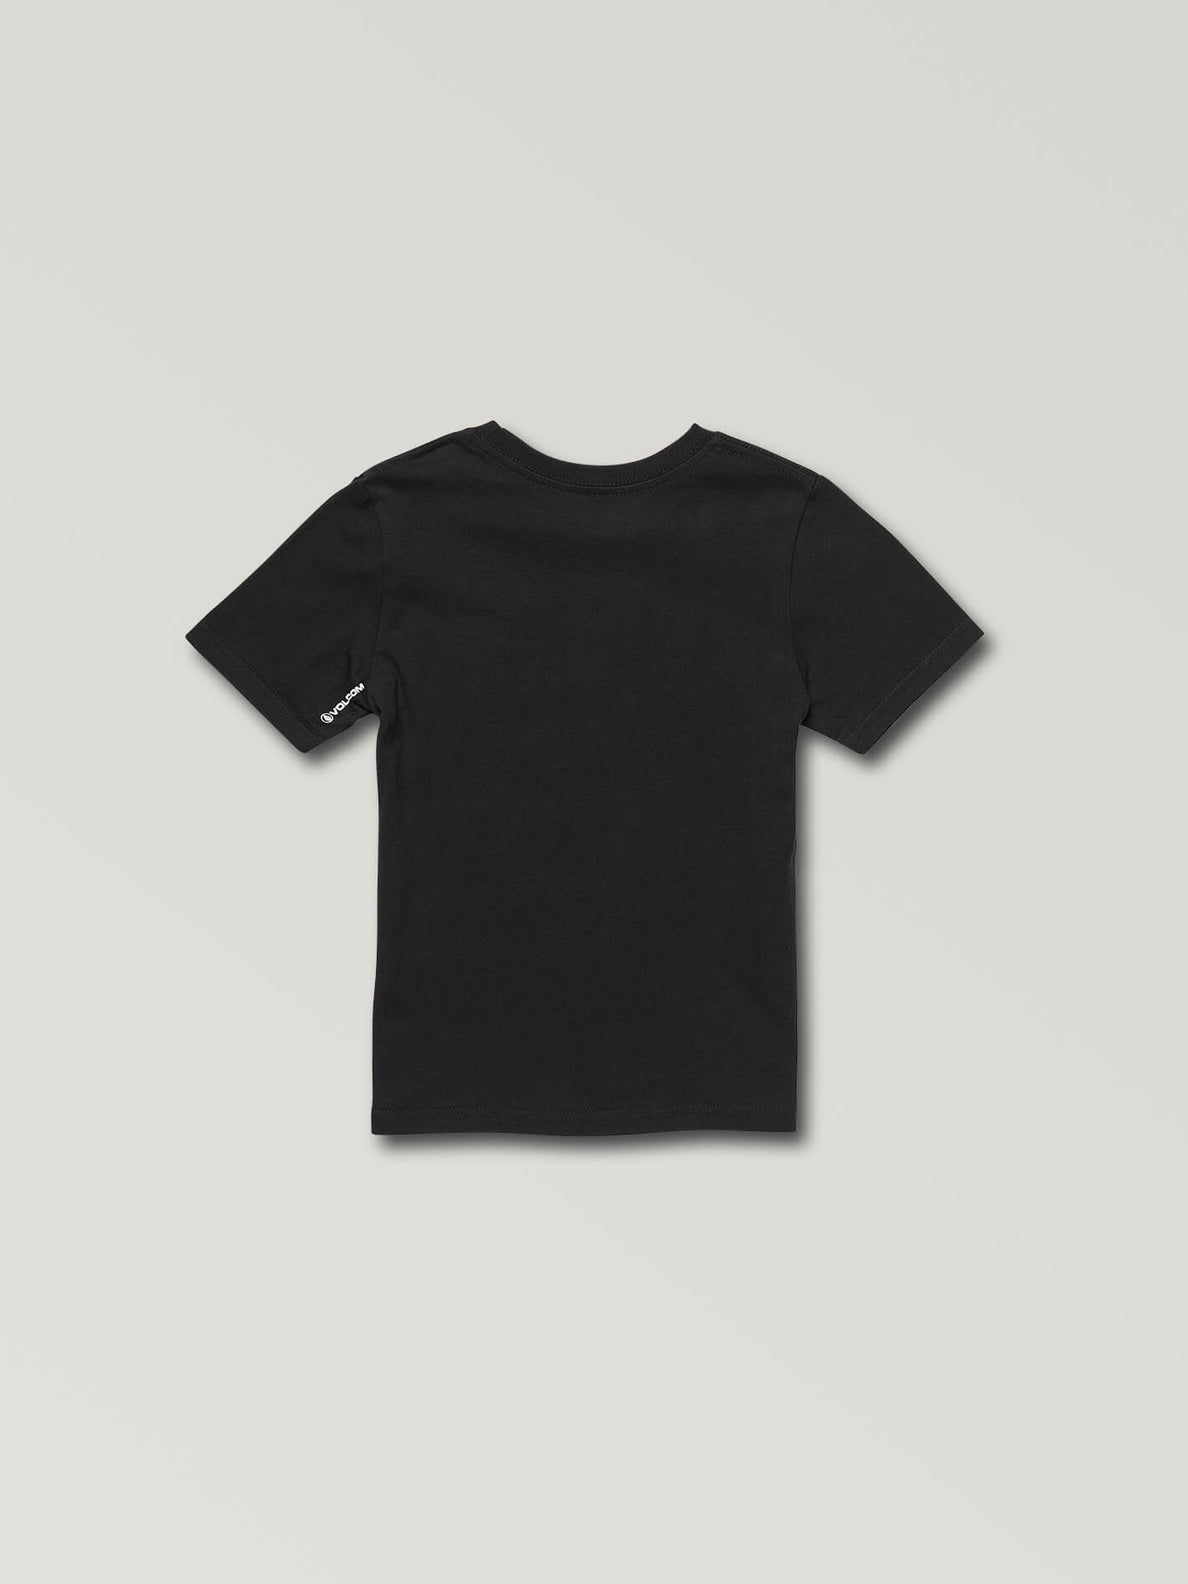 Little Boys Stone Sounds Short Sleeve Tee In Black, Back View